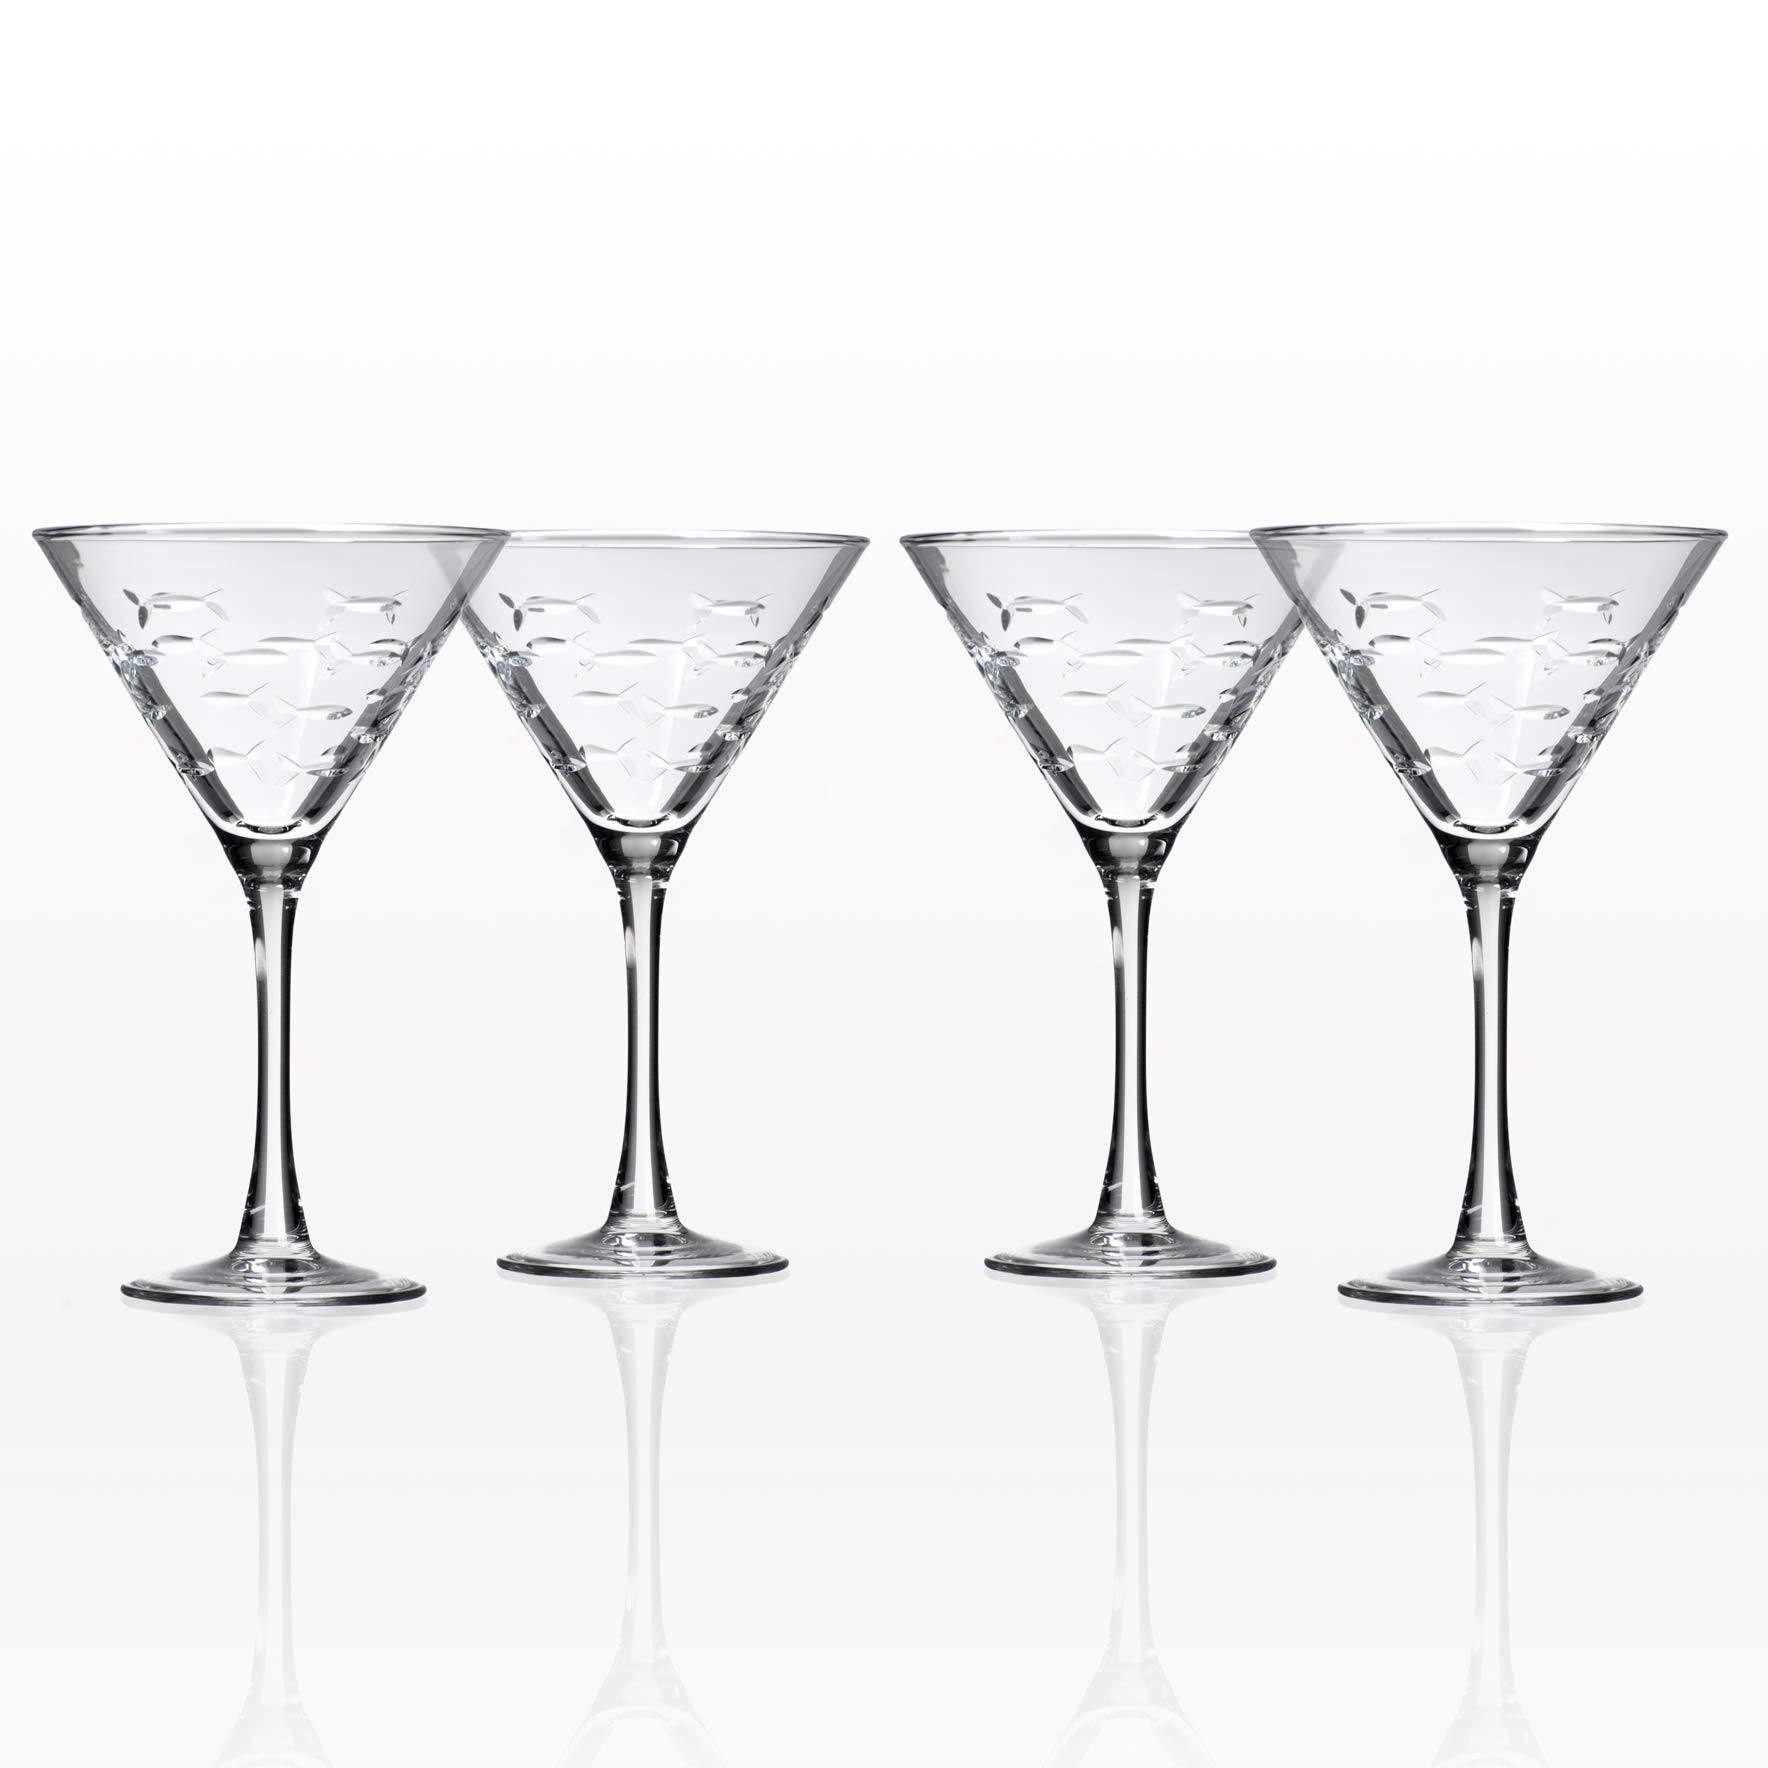 School of Fish Martini Glasses Set of 4 by Rolf Glass by Rolf Glass